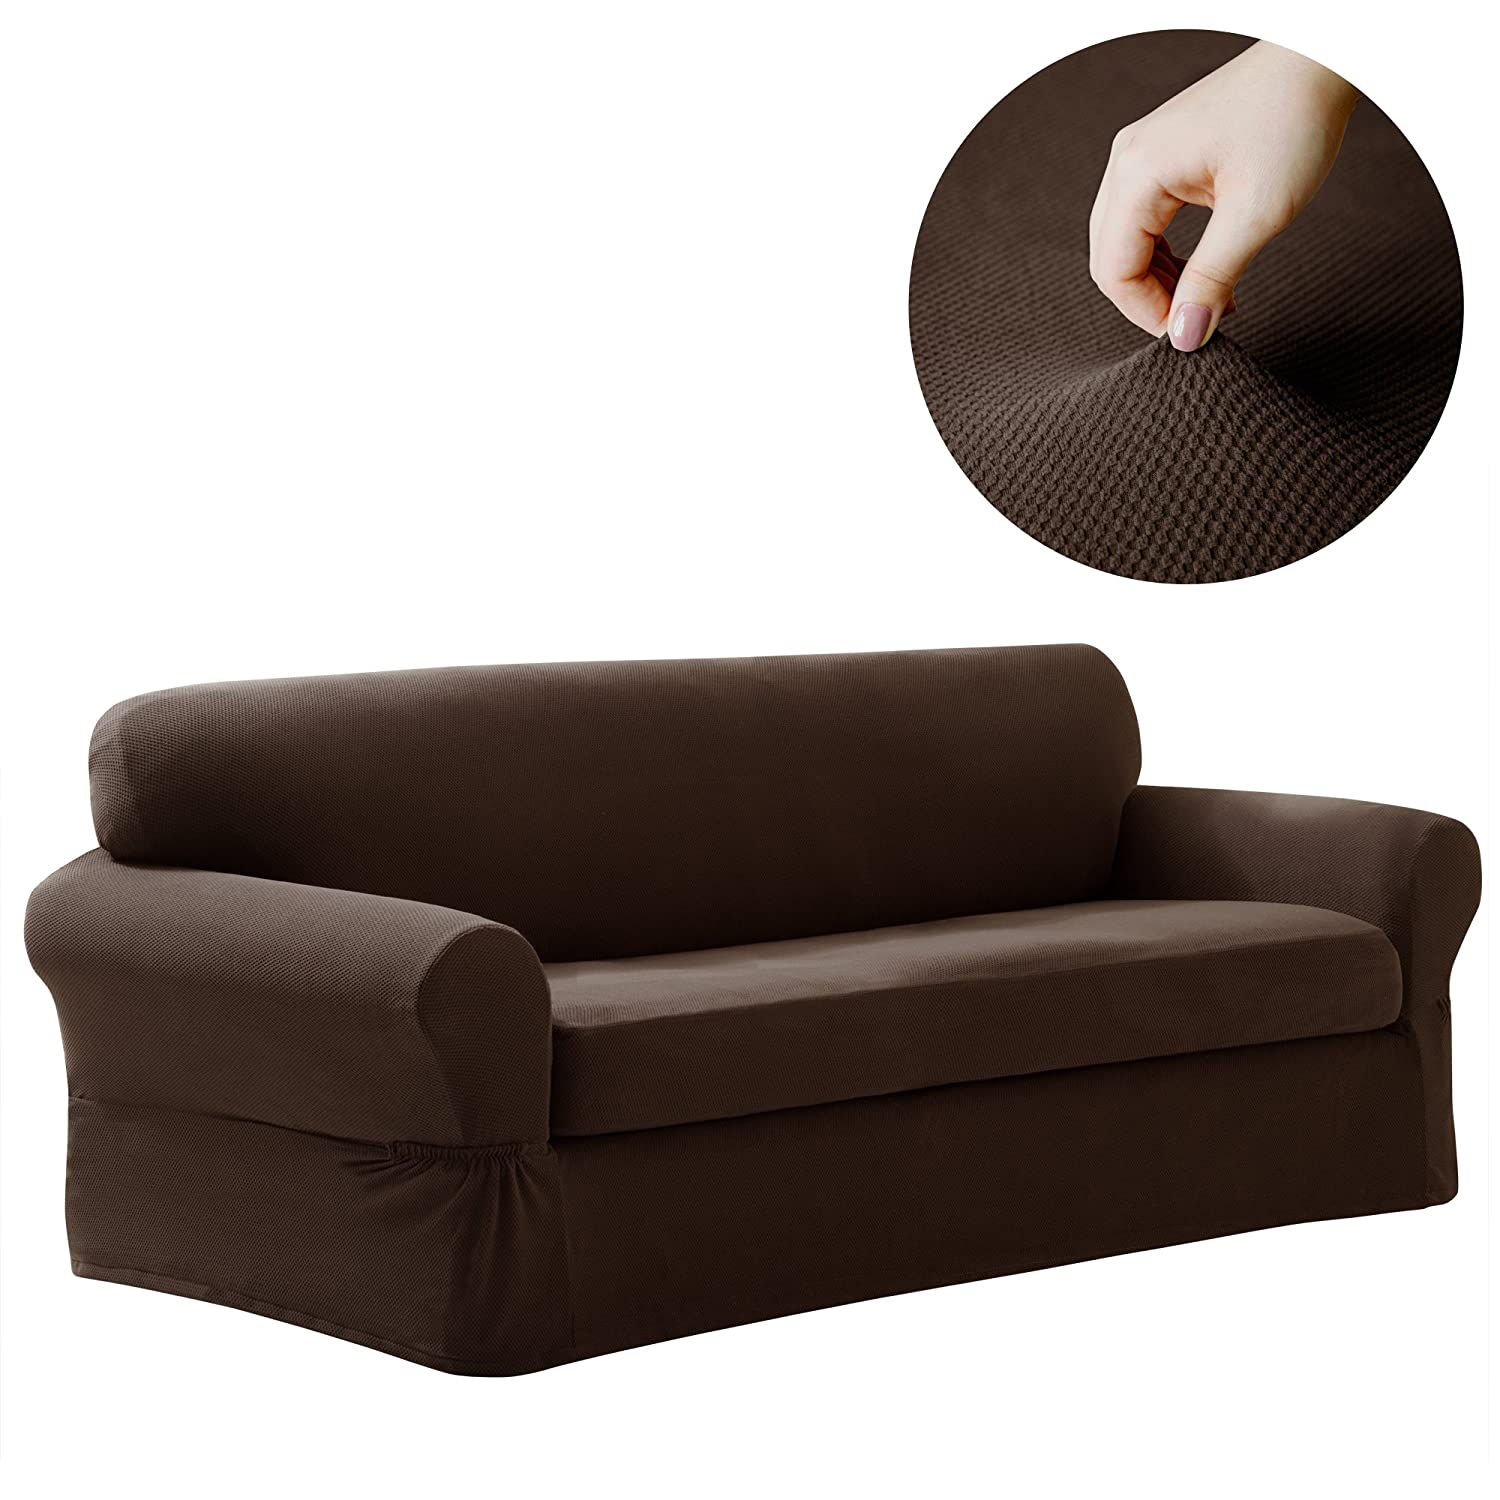 Maytex Pixel Sofa Furniture Cover Black Friday Deal